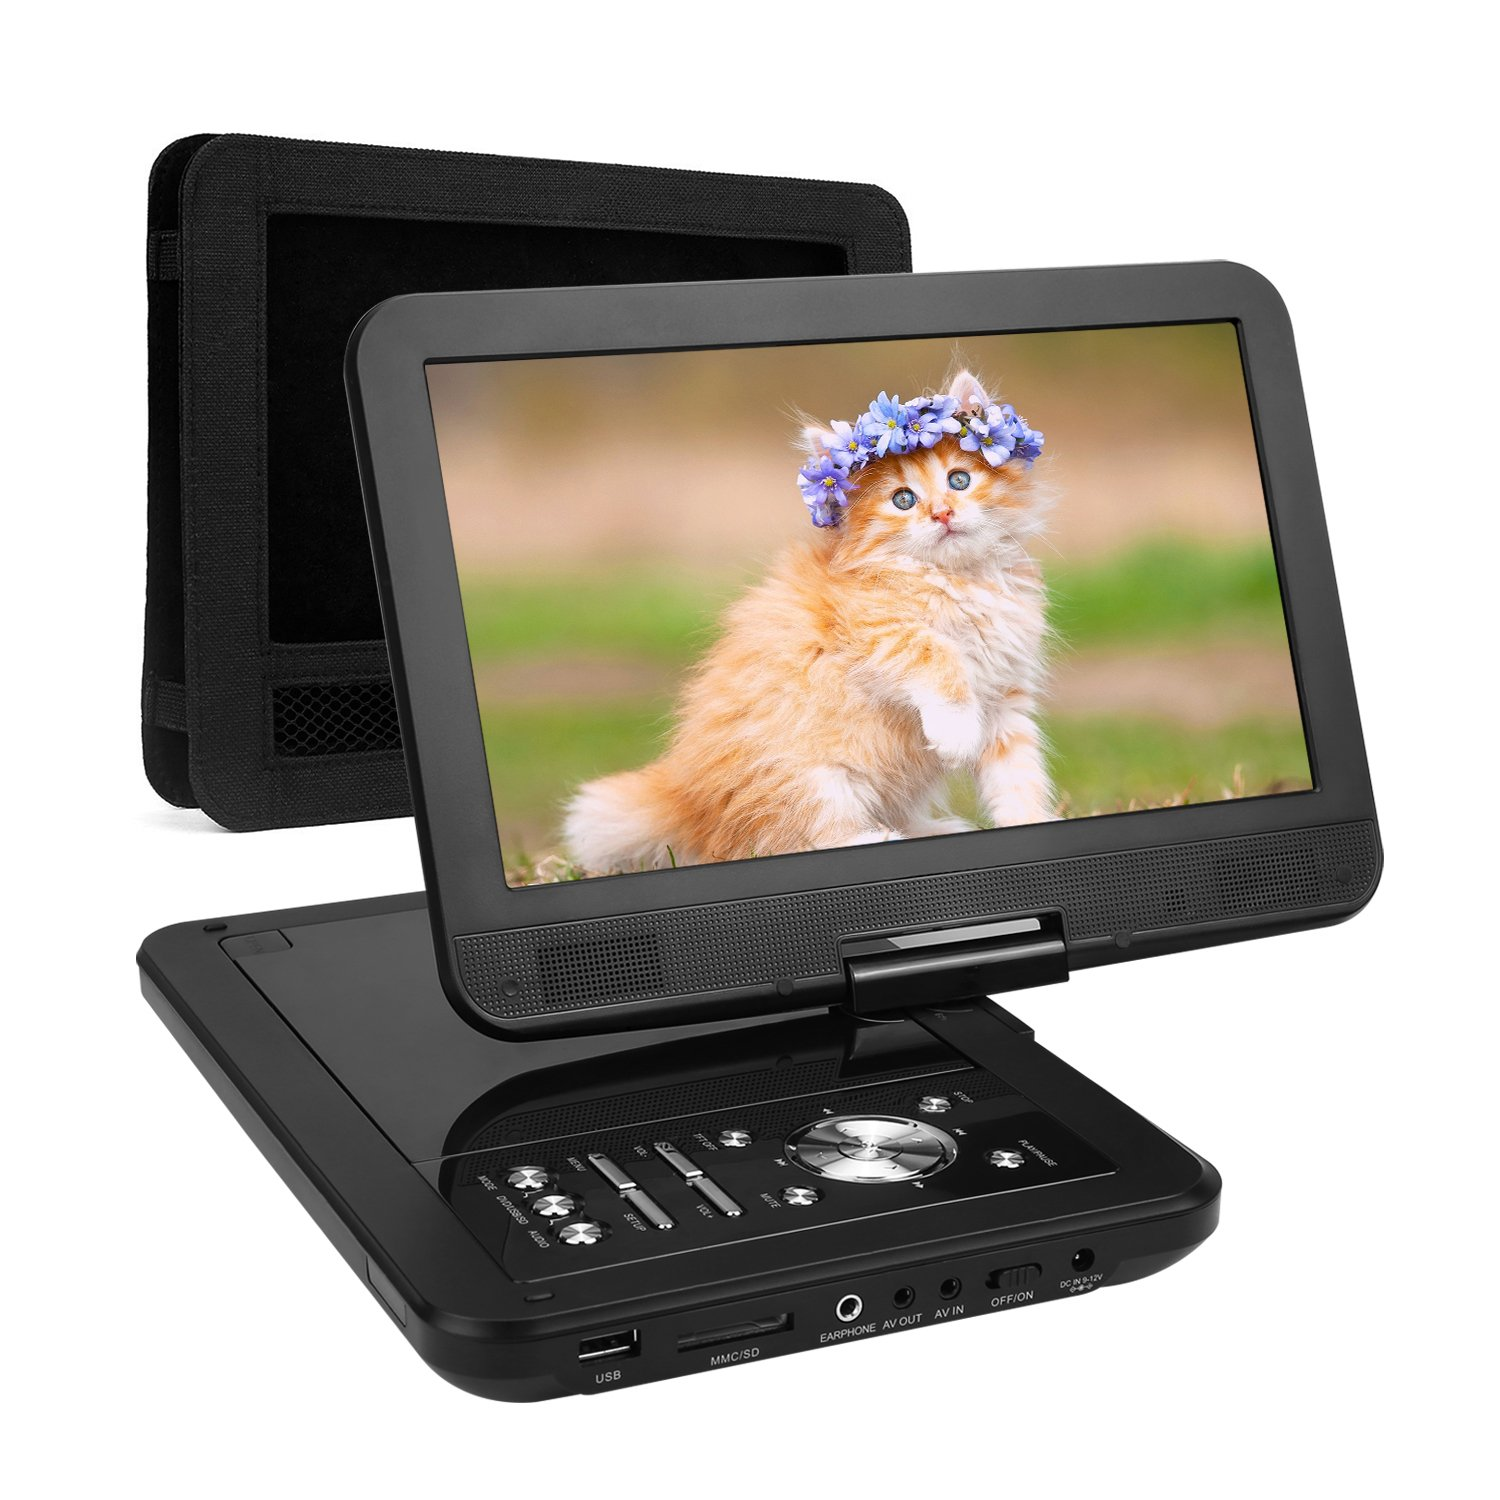 NAVISKAUTO 10.1 Inch Portable HD DVD Player Swivel Screen USB/SD with Car Headrest Mount Case and 5-Hour Built-In Rechargeable Battery